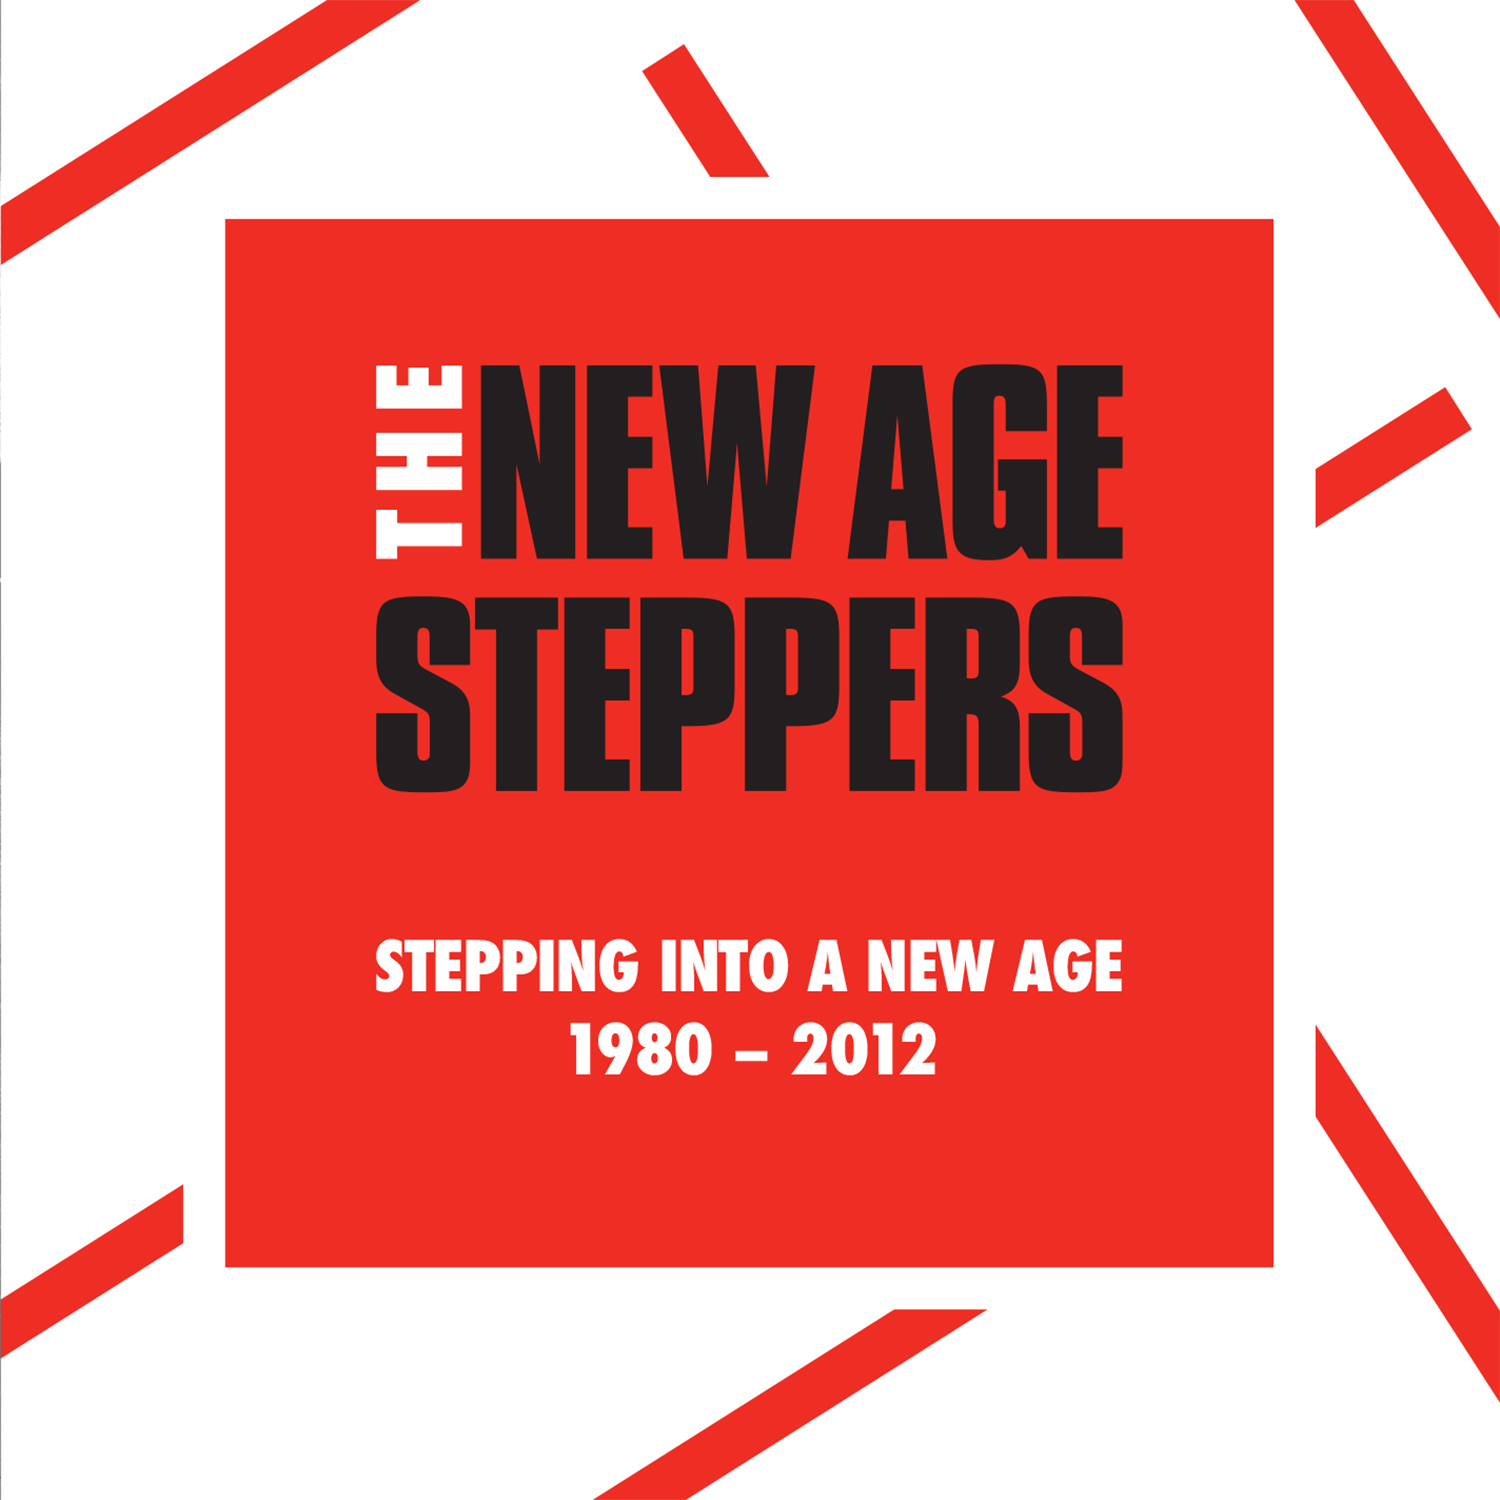 NEW AGE STEPPERS / STEPPING INTO A NEW AGE 1980 - 2012 限定 国内仕様5CD(BOX)+Tシャツ(L)